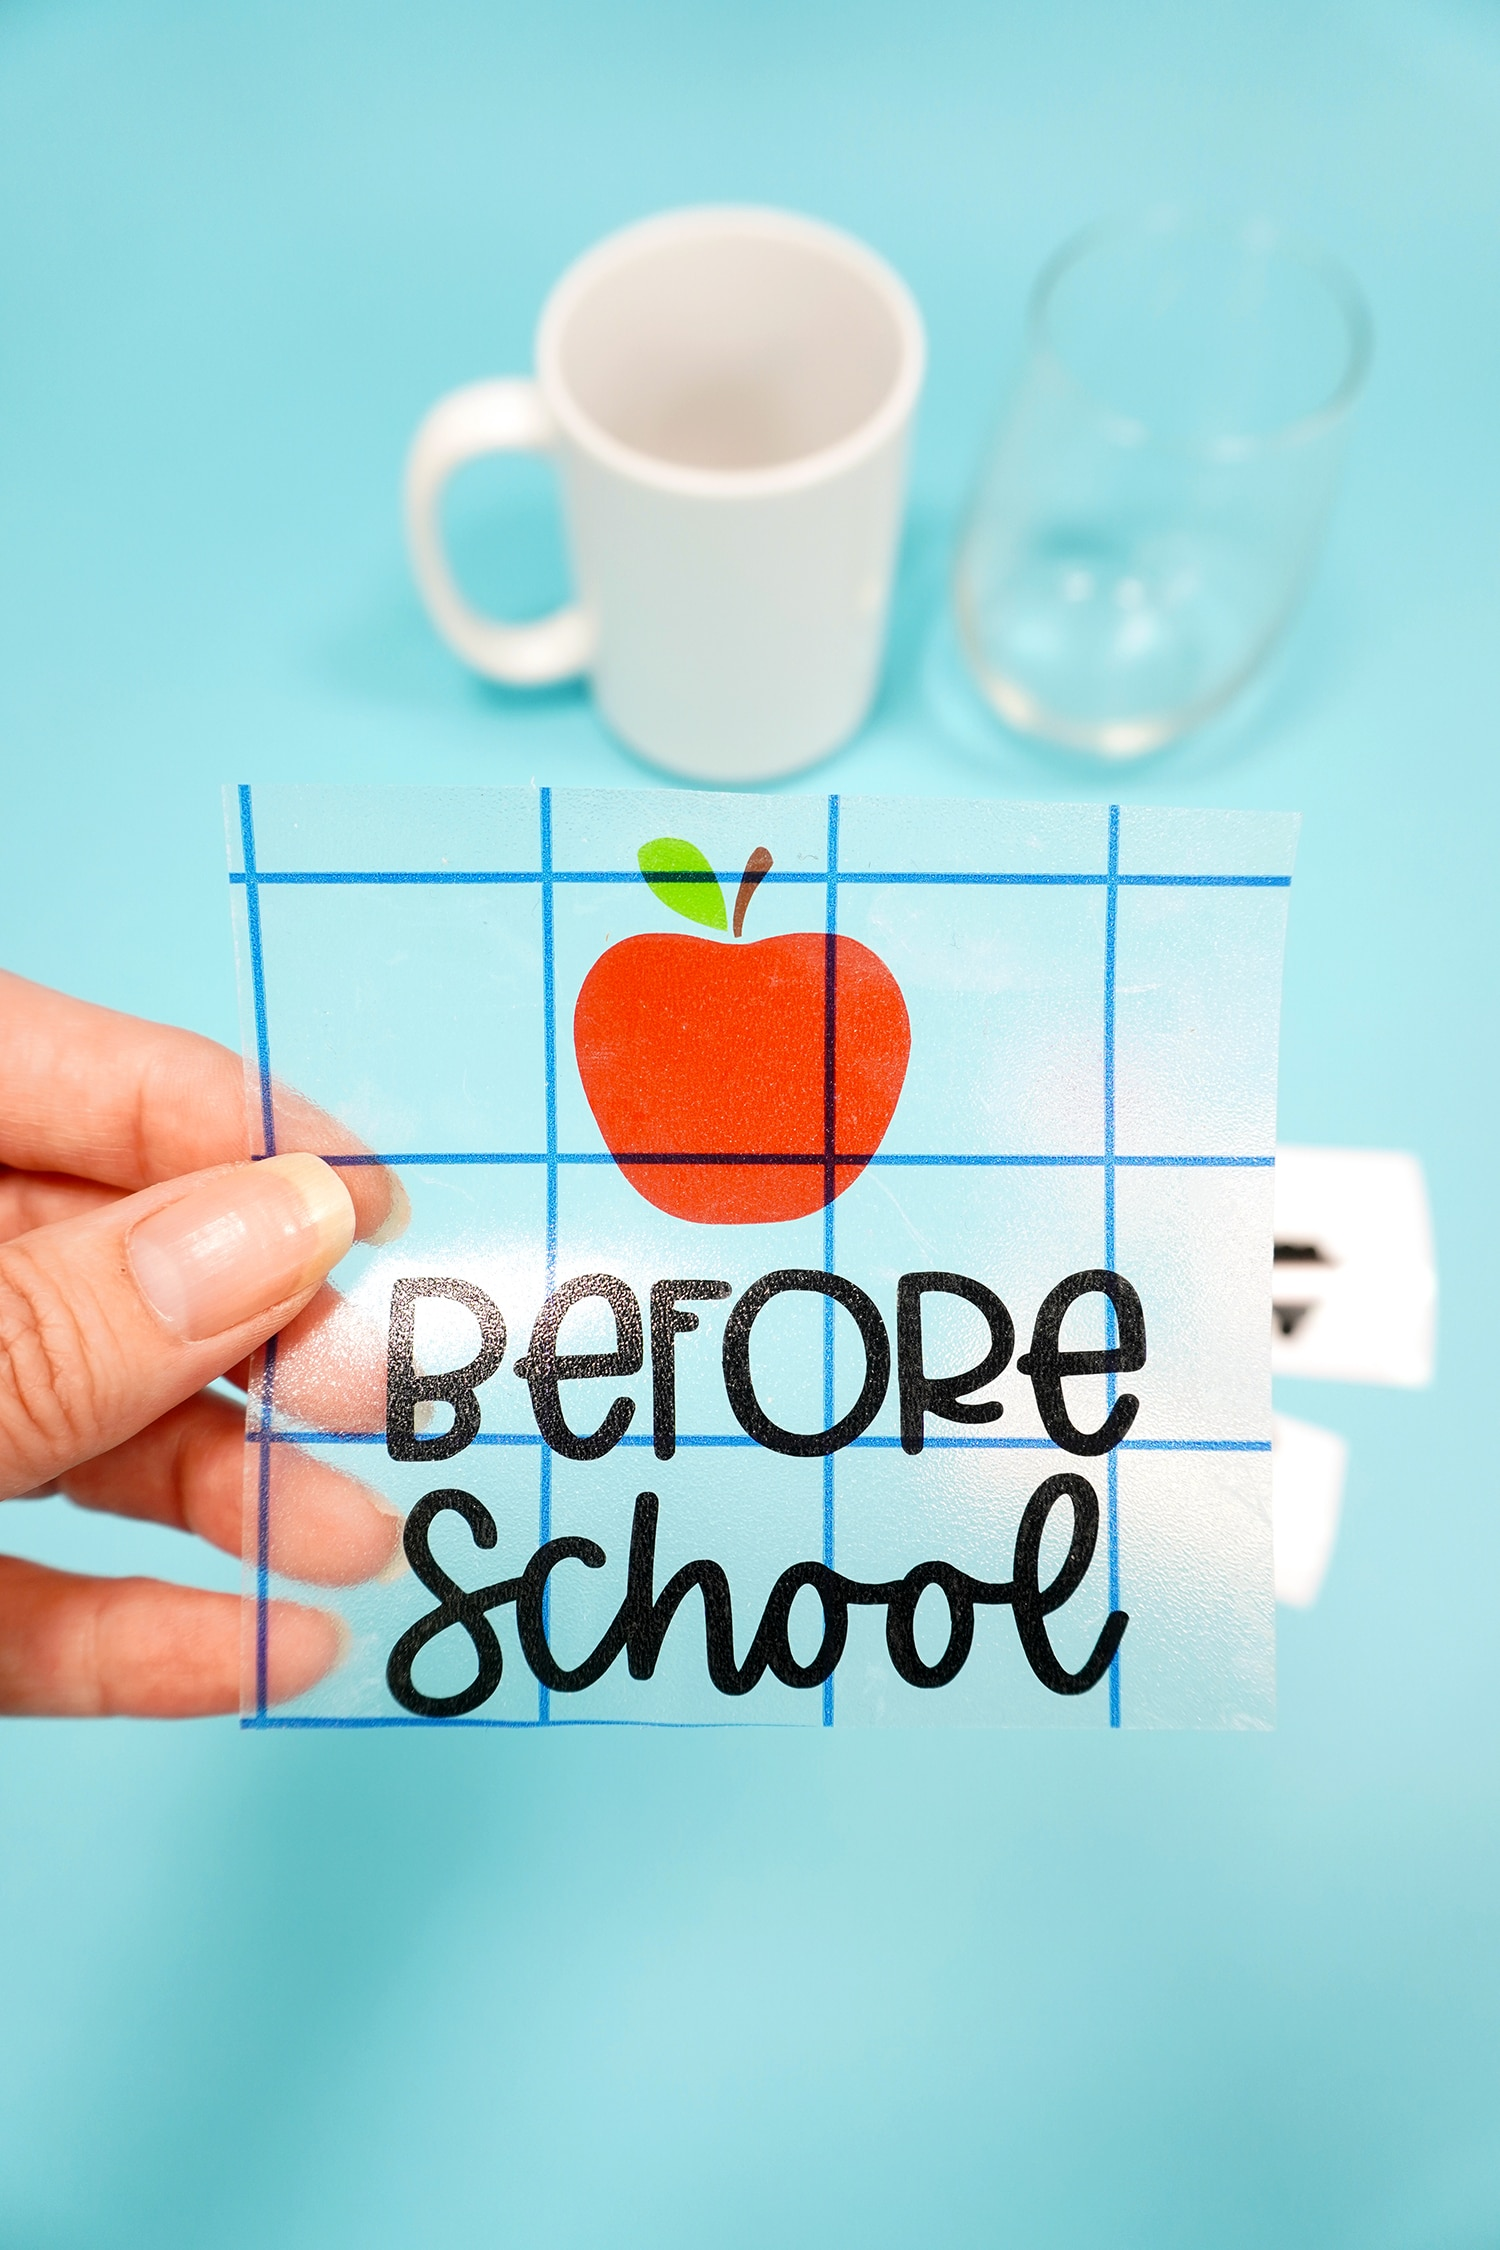 """Hand holding apple and """"before school"""" vinyl on transfer tape on blue backround"""